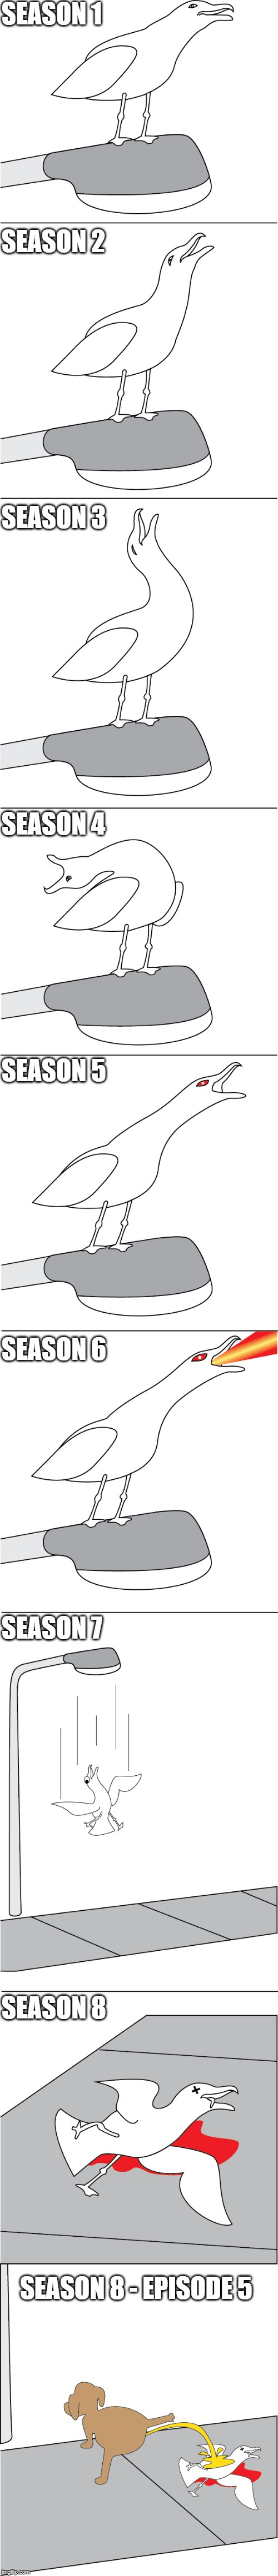 GAME OF THRONES | SEASON 1 SEASON 2 SEASON 3 SEASON 4 SEASON 5 SEASON 6 SEASON 7 SEASON 8 SEASON 8 - EPISODE 5 | image tagged in seagull,game of thrones | made w/ Imgflip meme maker